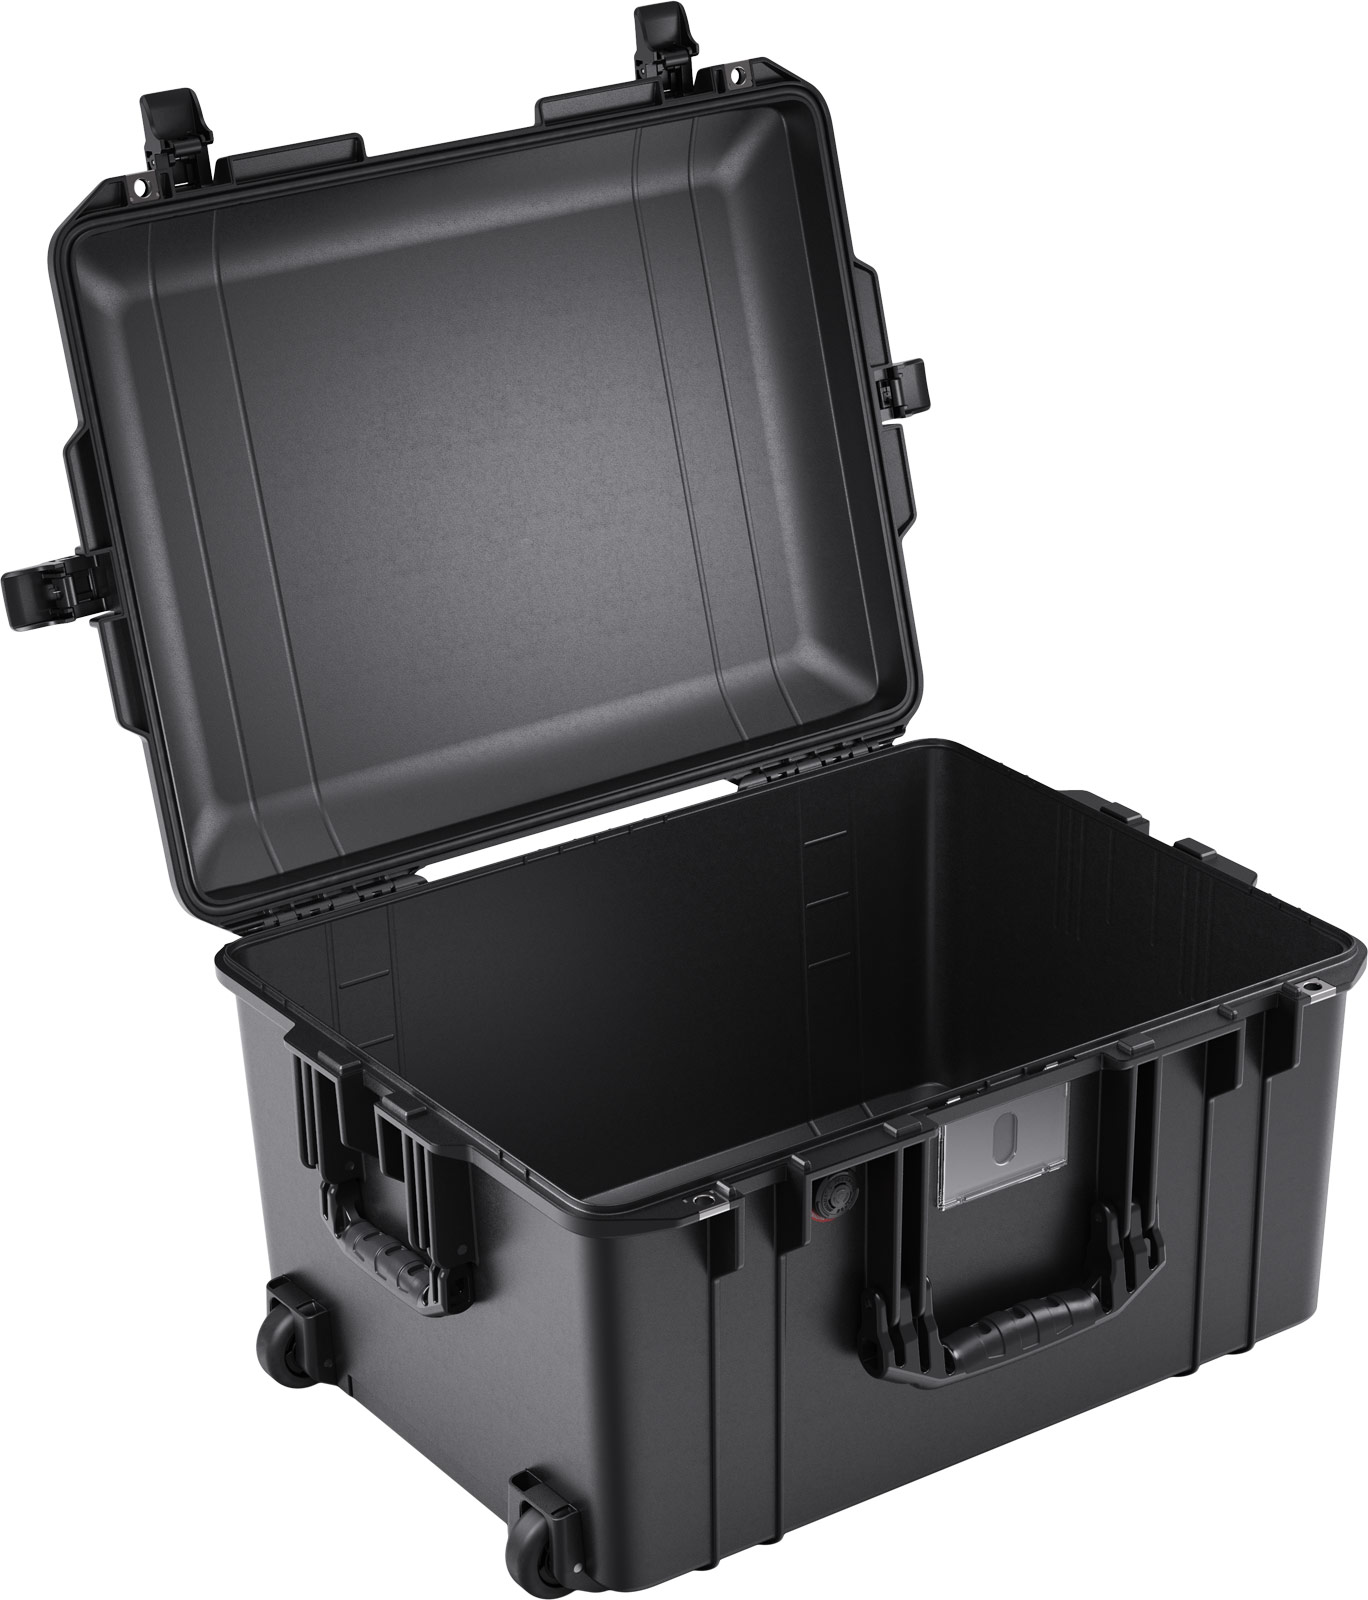 pelican 1607 1607nf air case deep travel cases